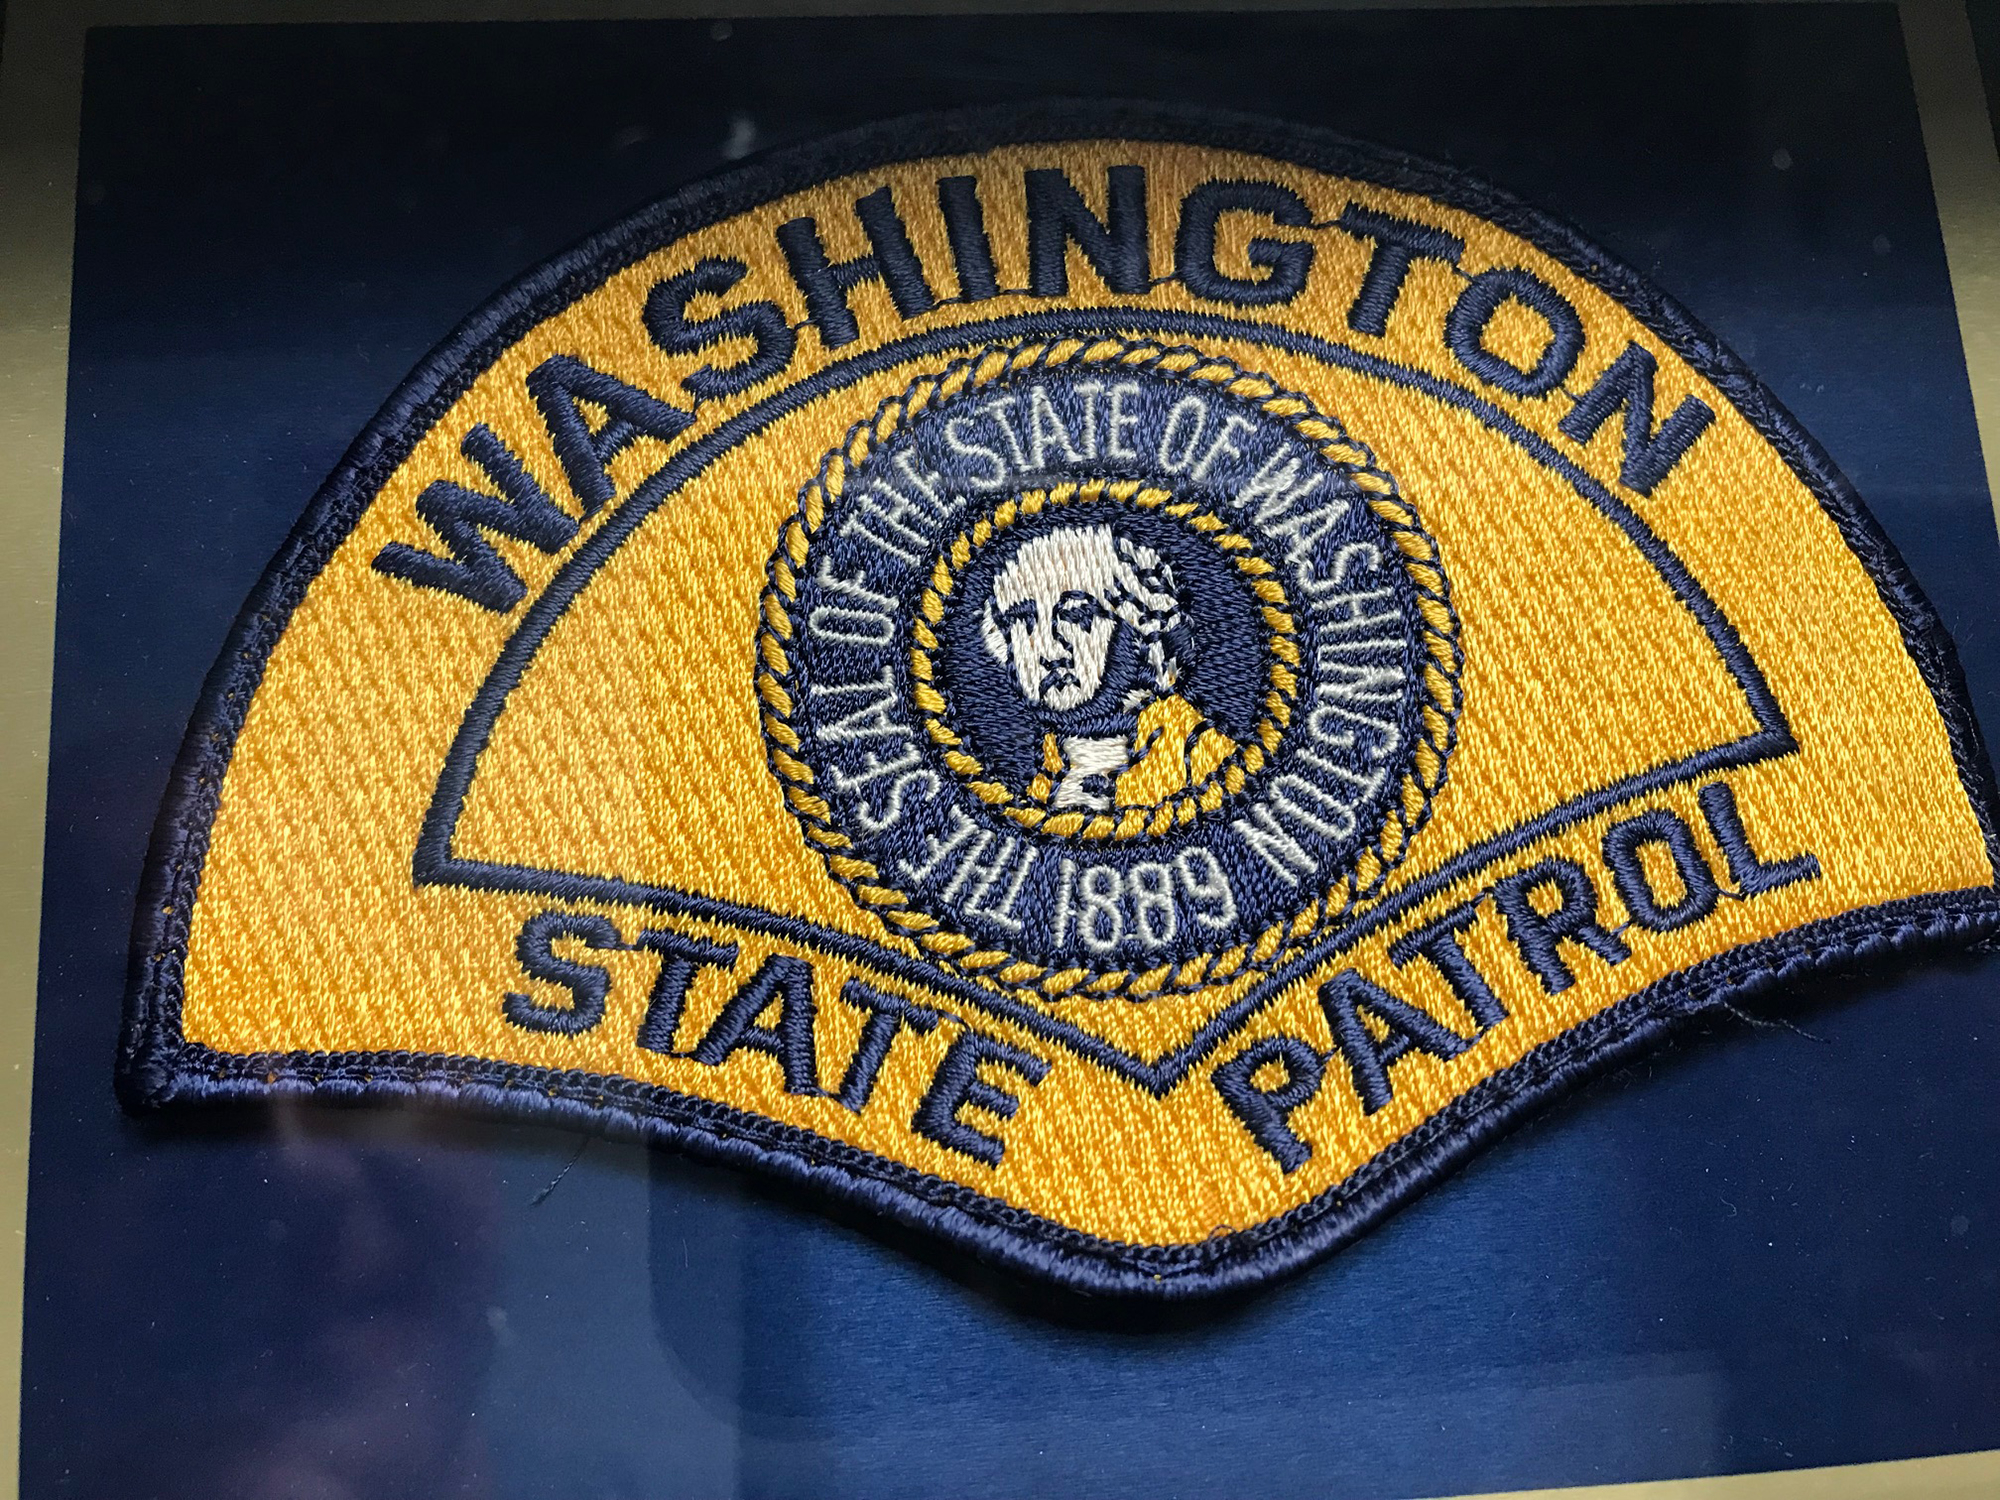 1004952328-07-26-Police-patches-WSP-patch